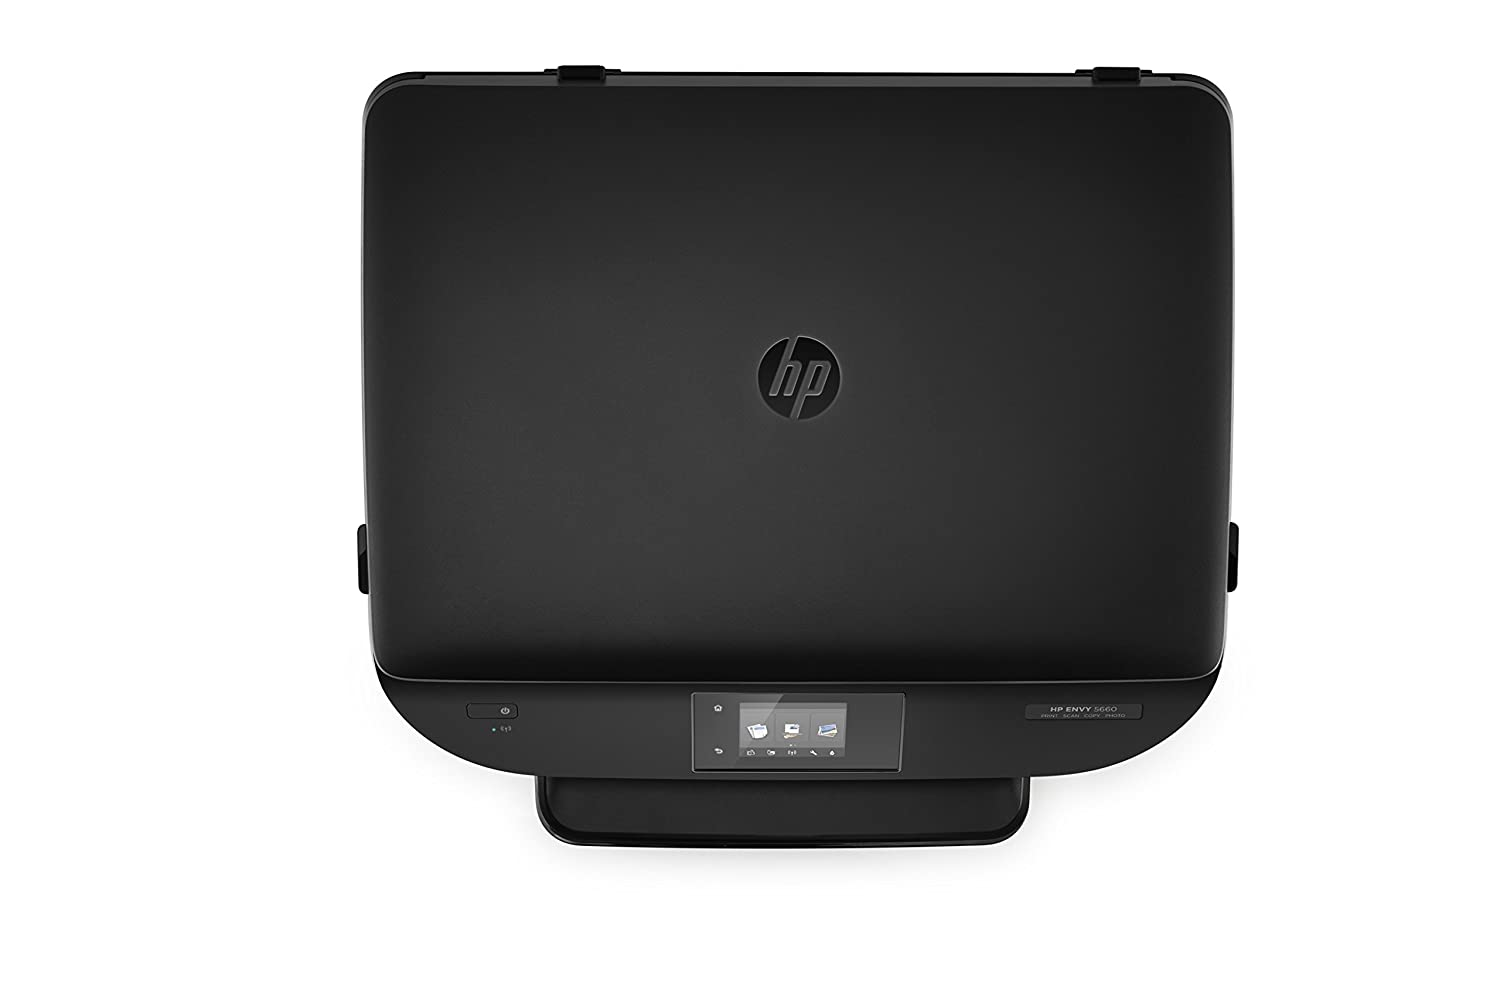 HP Envy 5660 Wireless All-in-One Photo Printer with Mobile Printing Instant Ink Ready Renewed F8B04AR